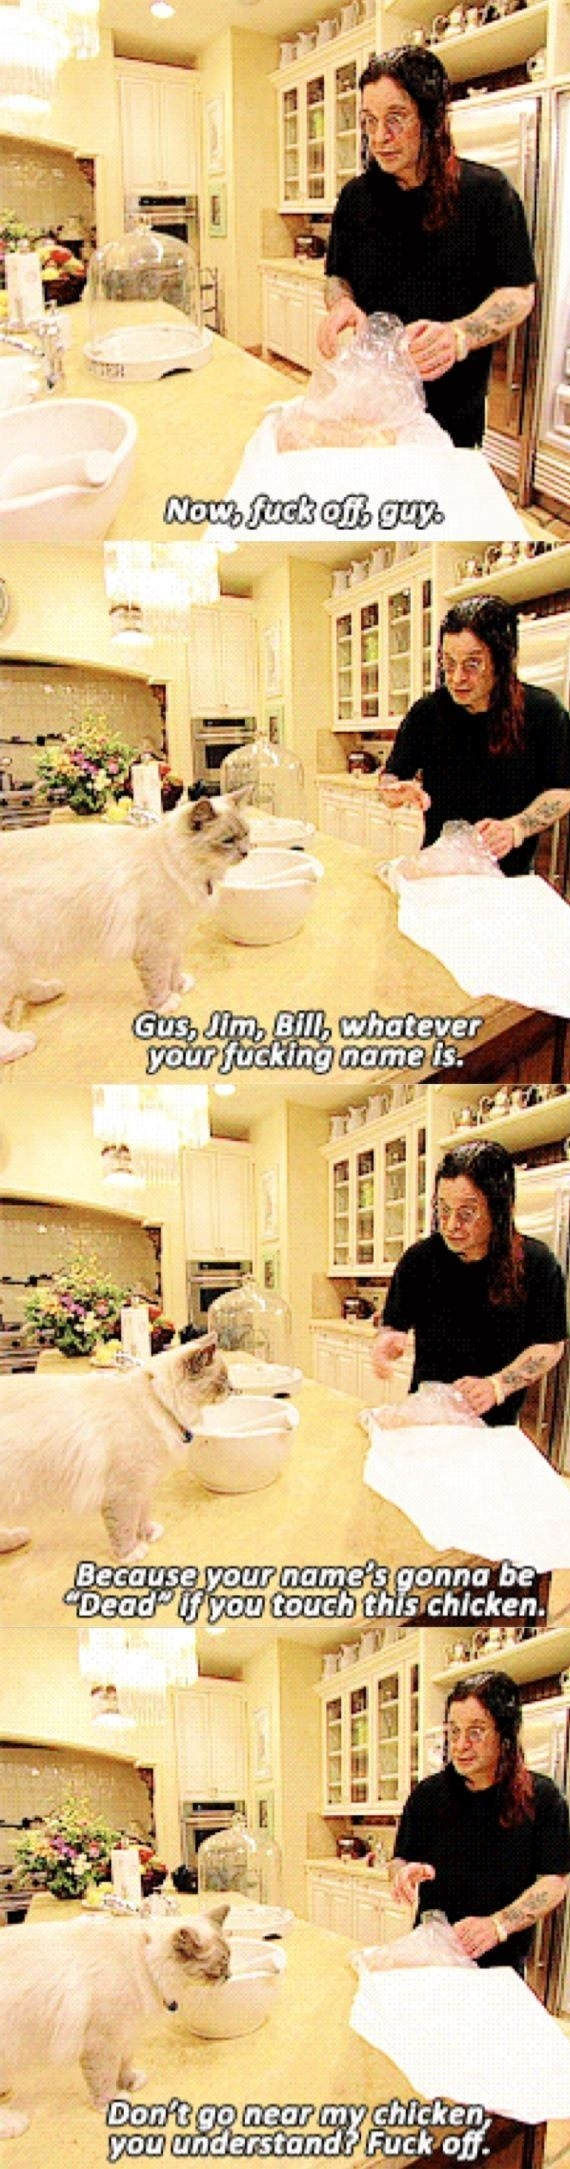 The Osbournes was hilarious